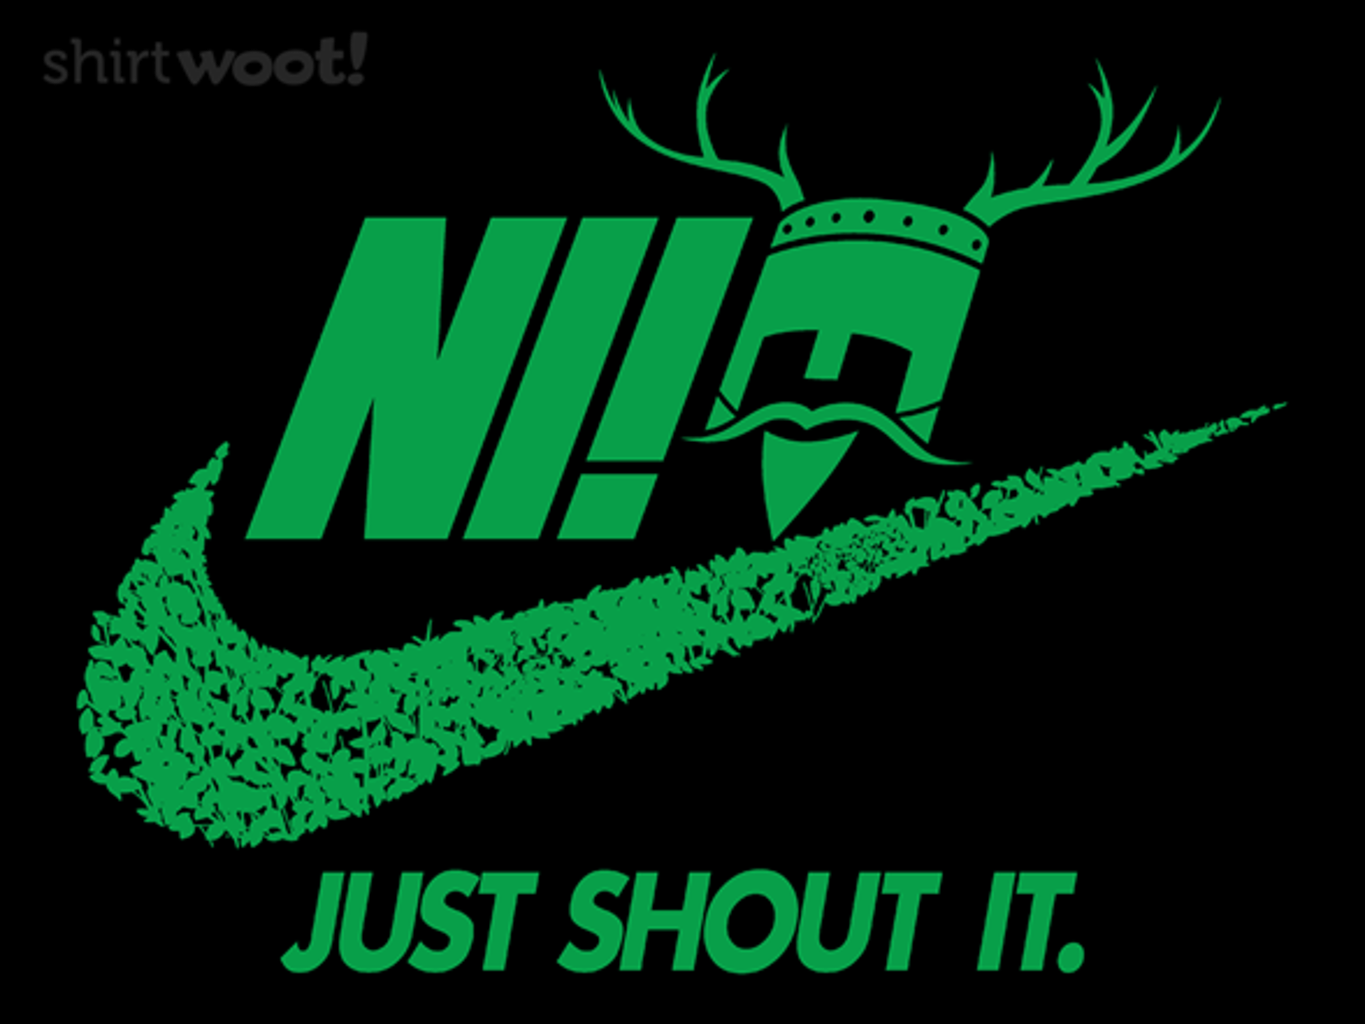 Woot!: Just Shout It